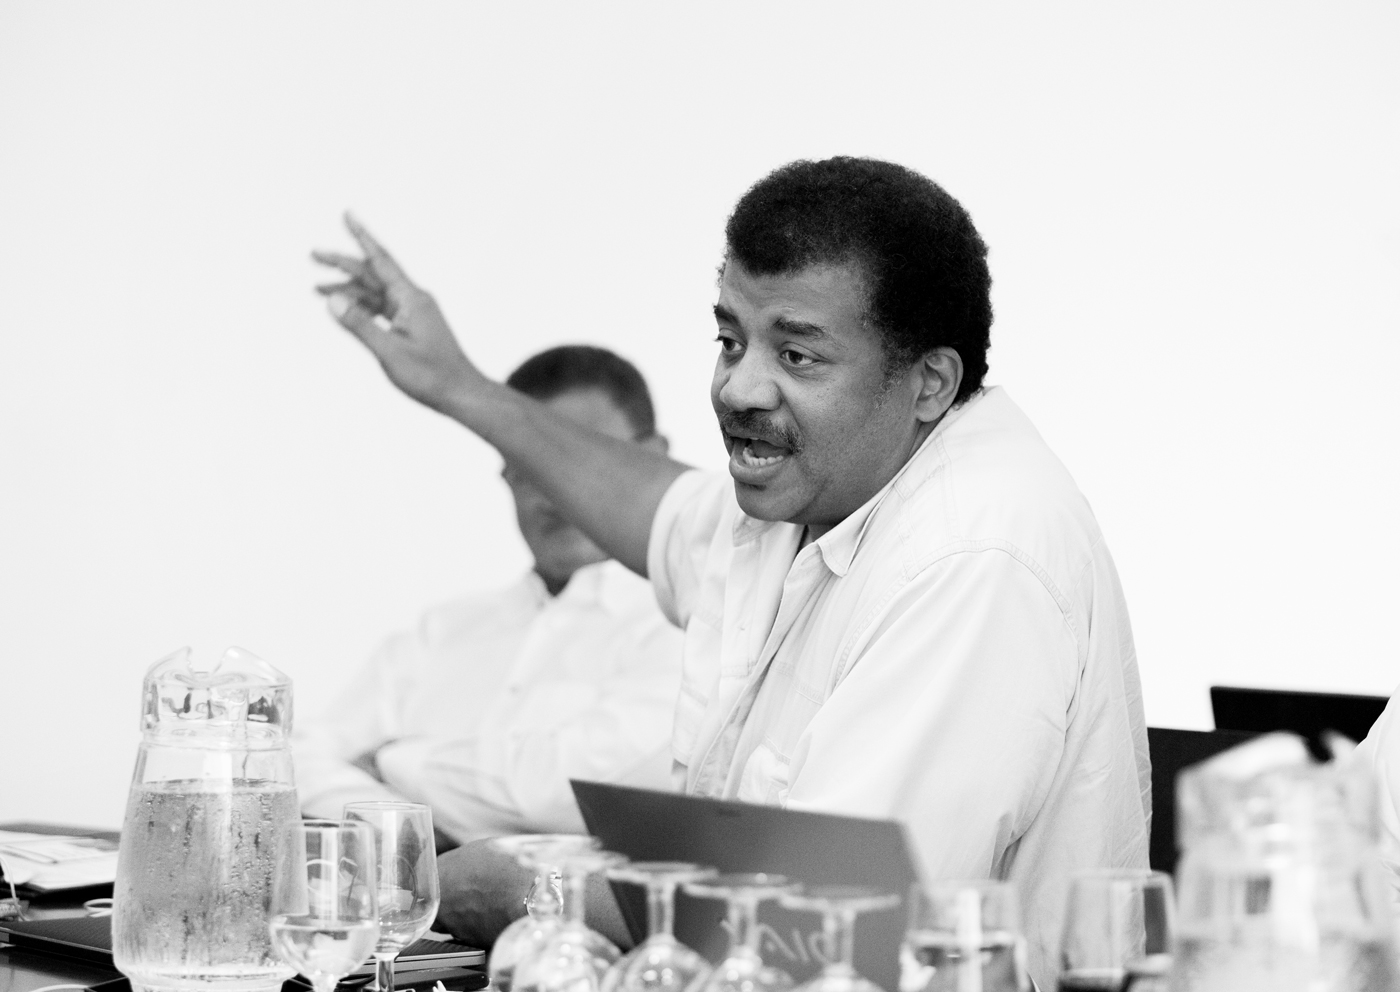 Neil deGrasse Tyson at The Planetary Society board of directors meeting.